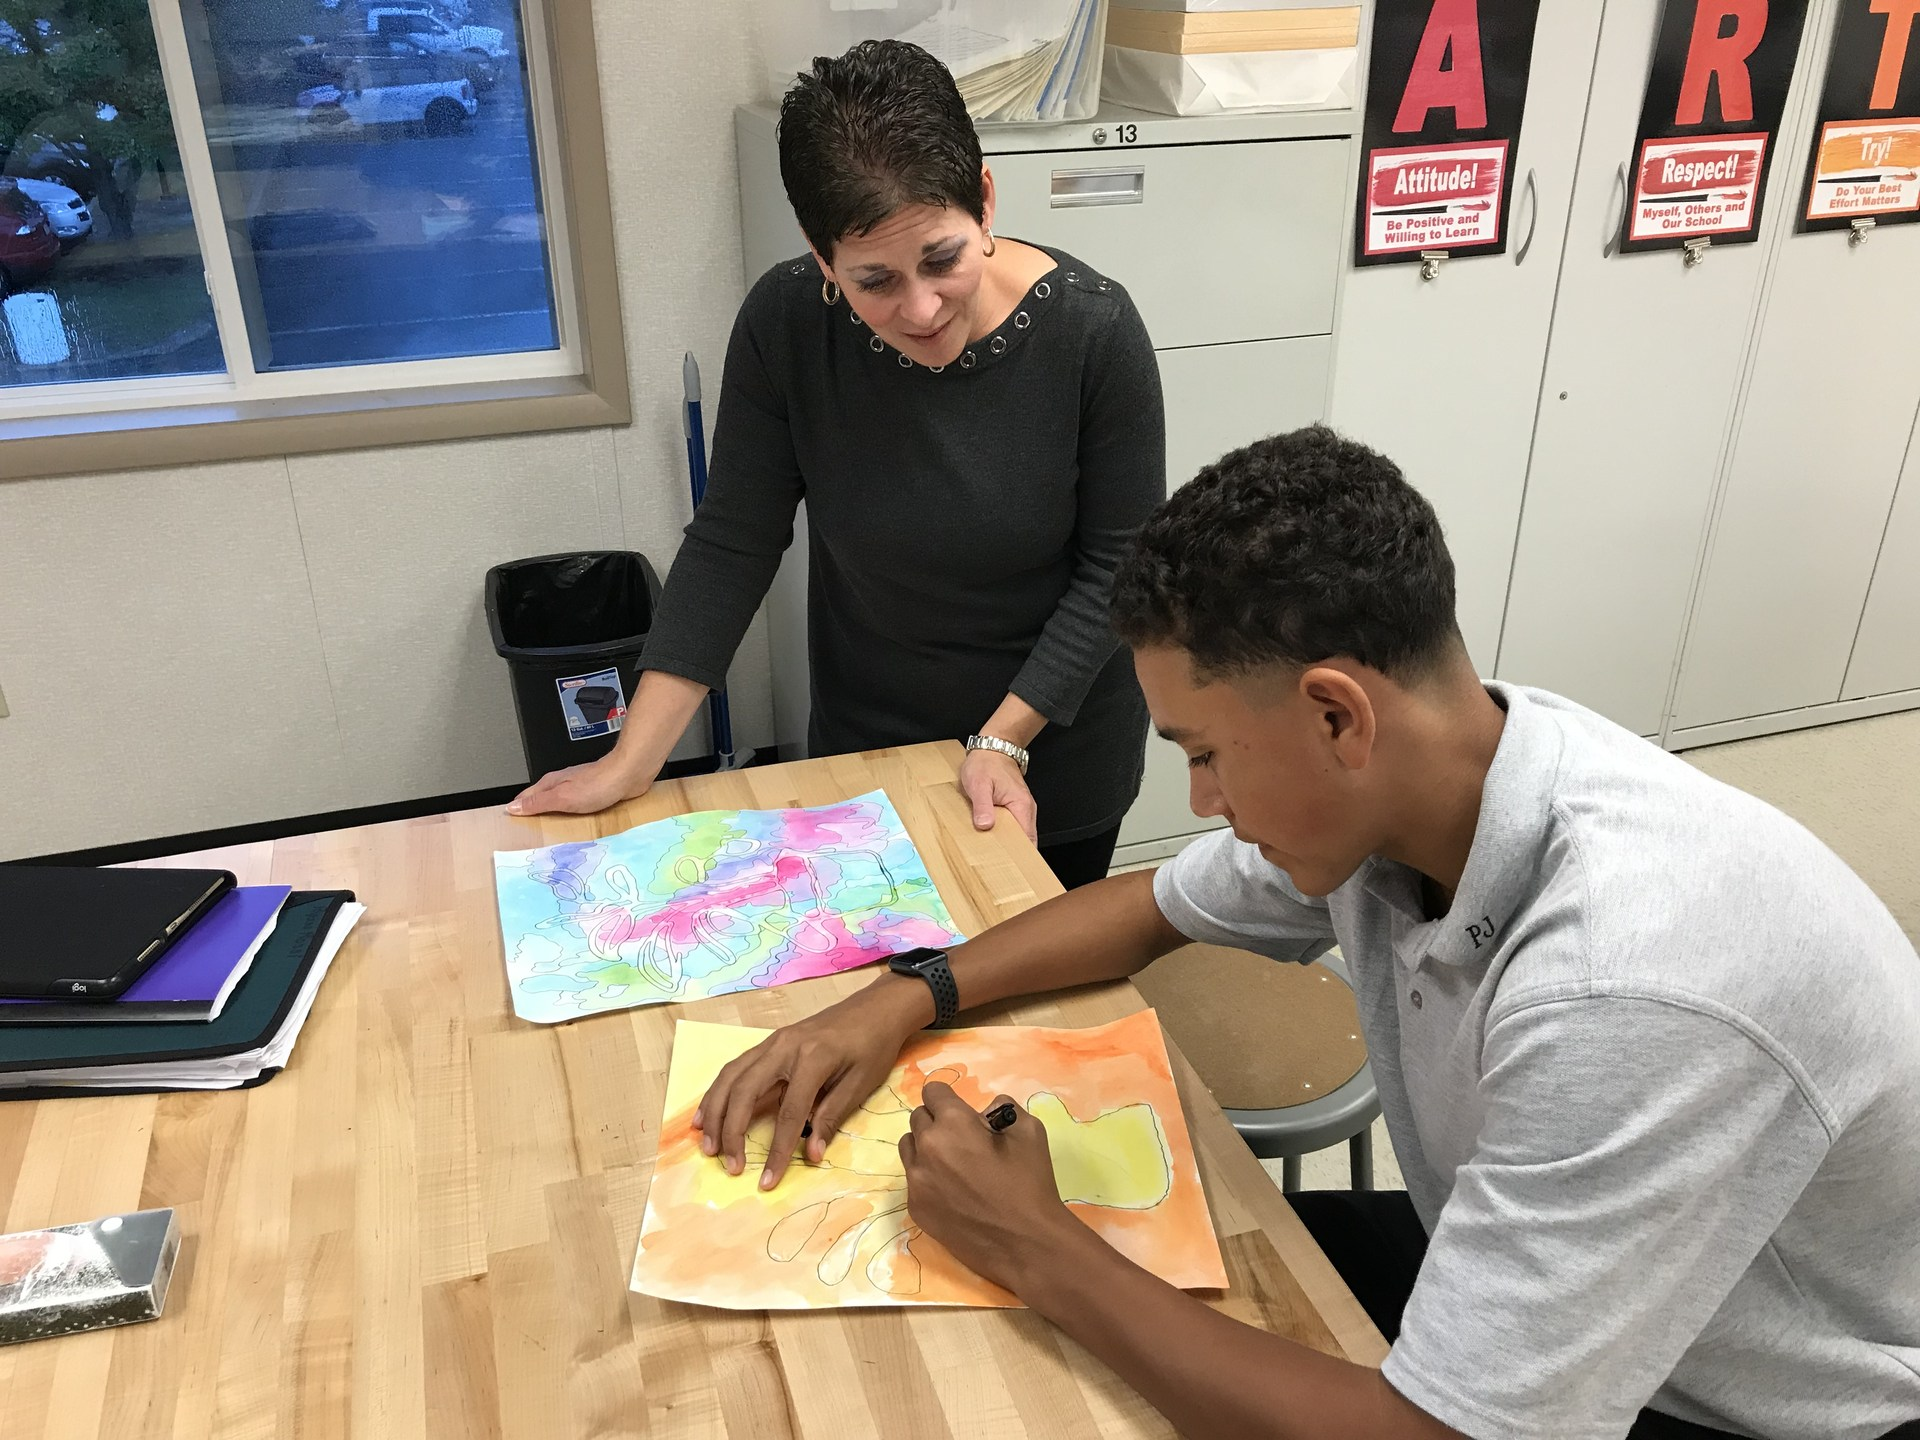 Art teacher helping student with drawing